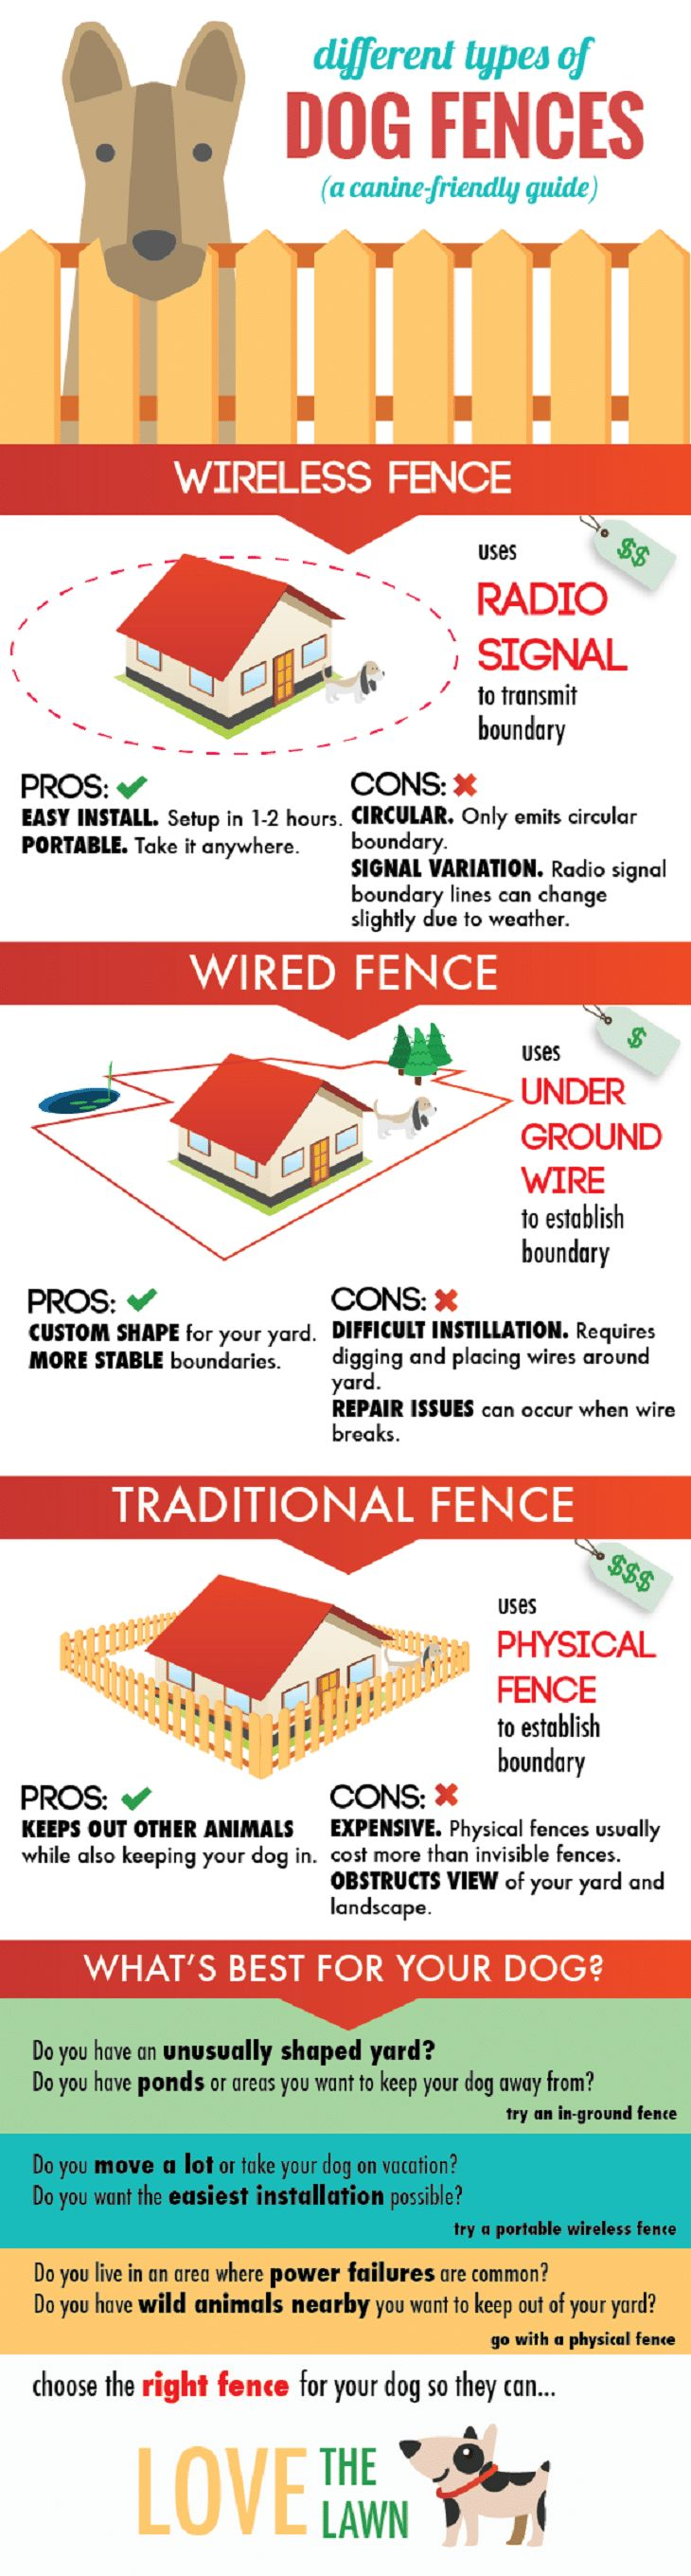 Diy dog fence: a personal solution for your dog's perimeter